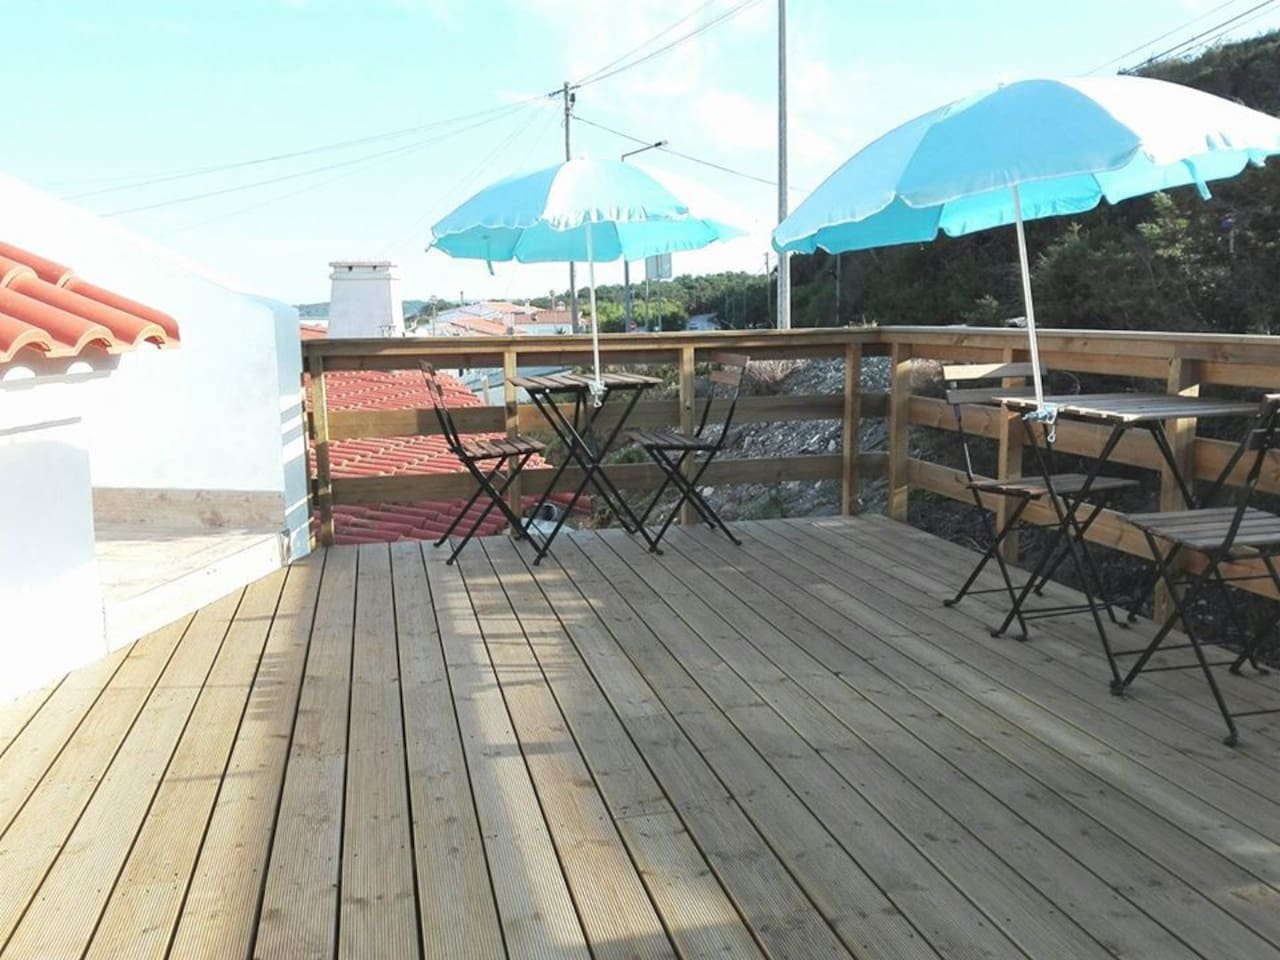 Deck with chairs and tables...